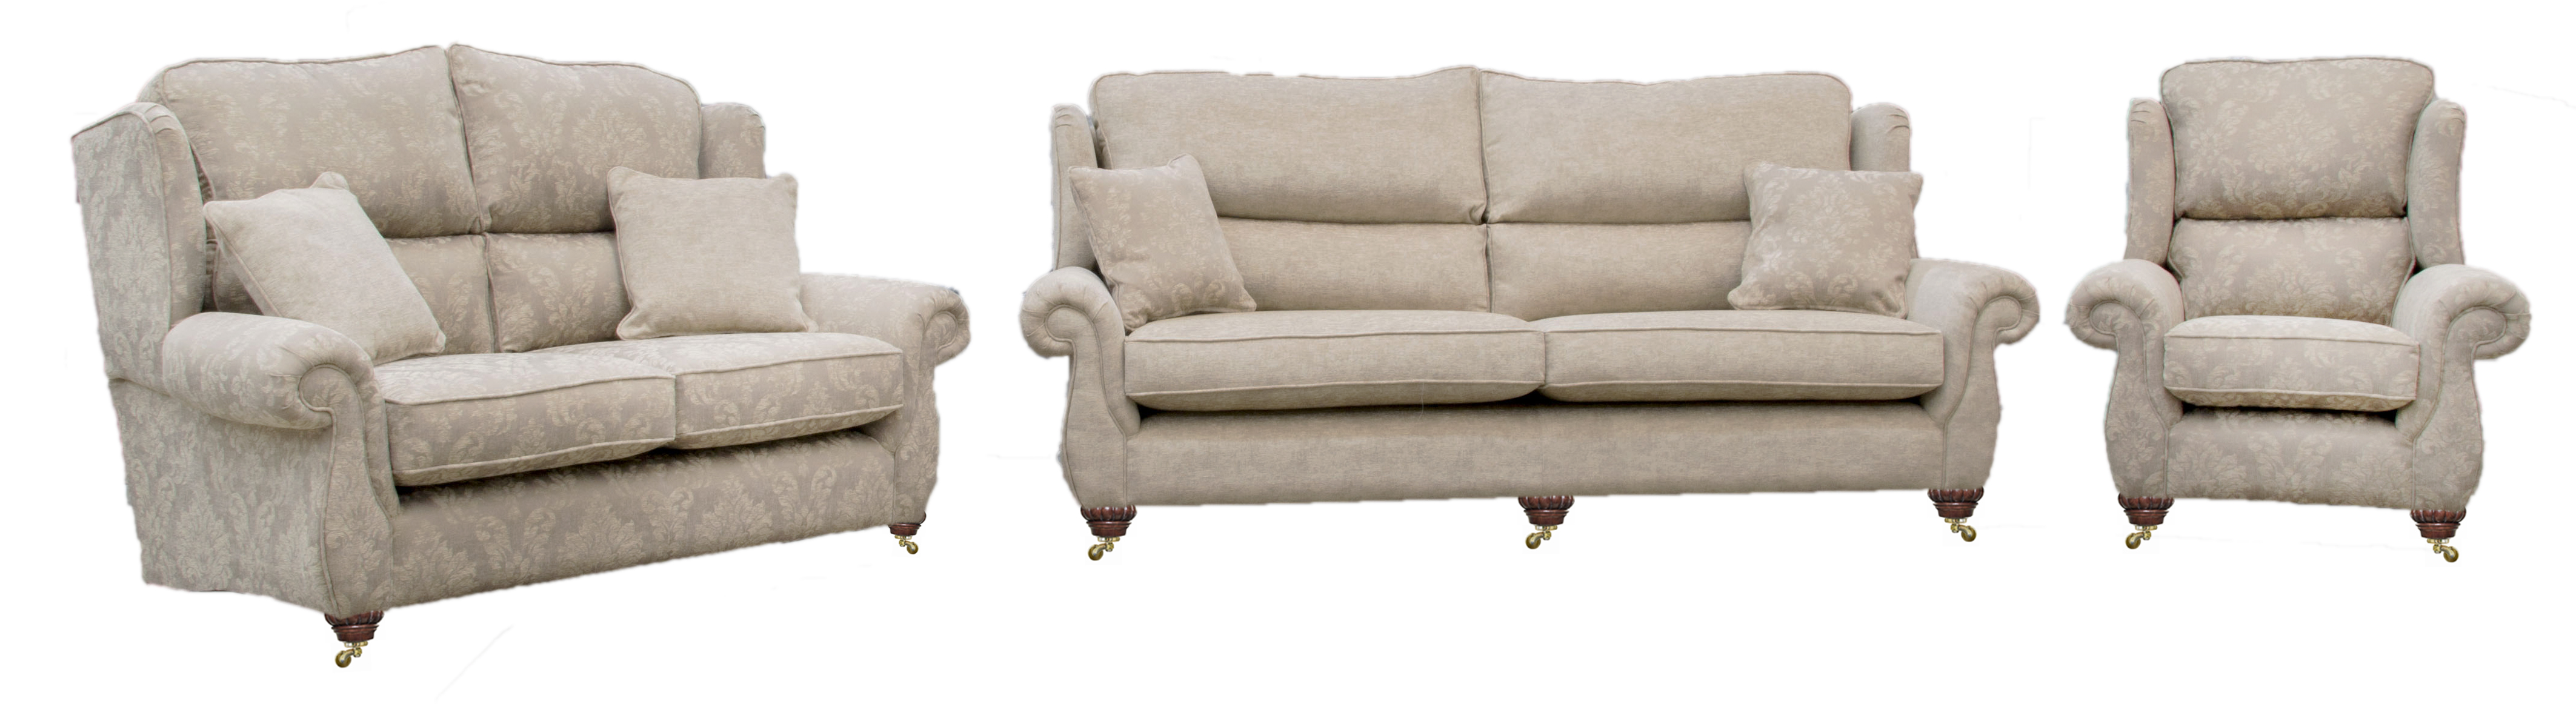 Greville small, grand sofa & chair - bronze collection